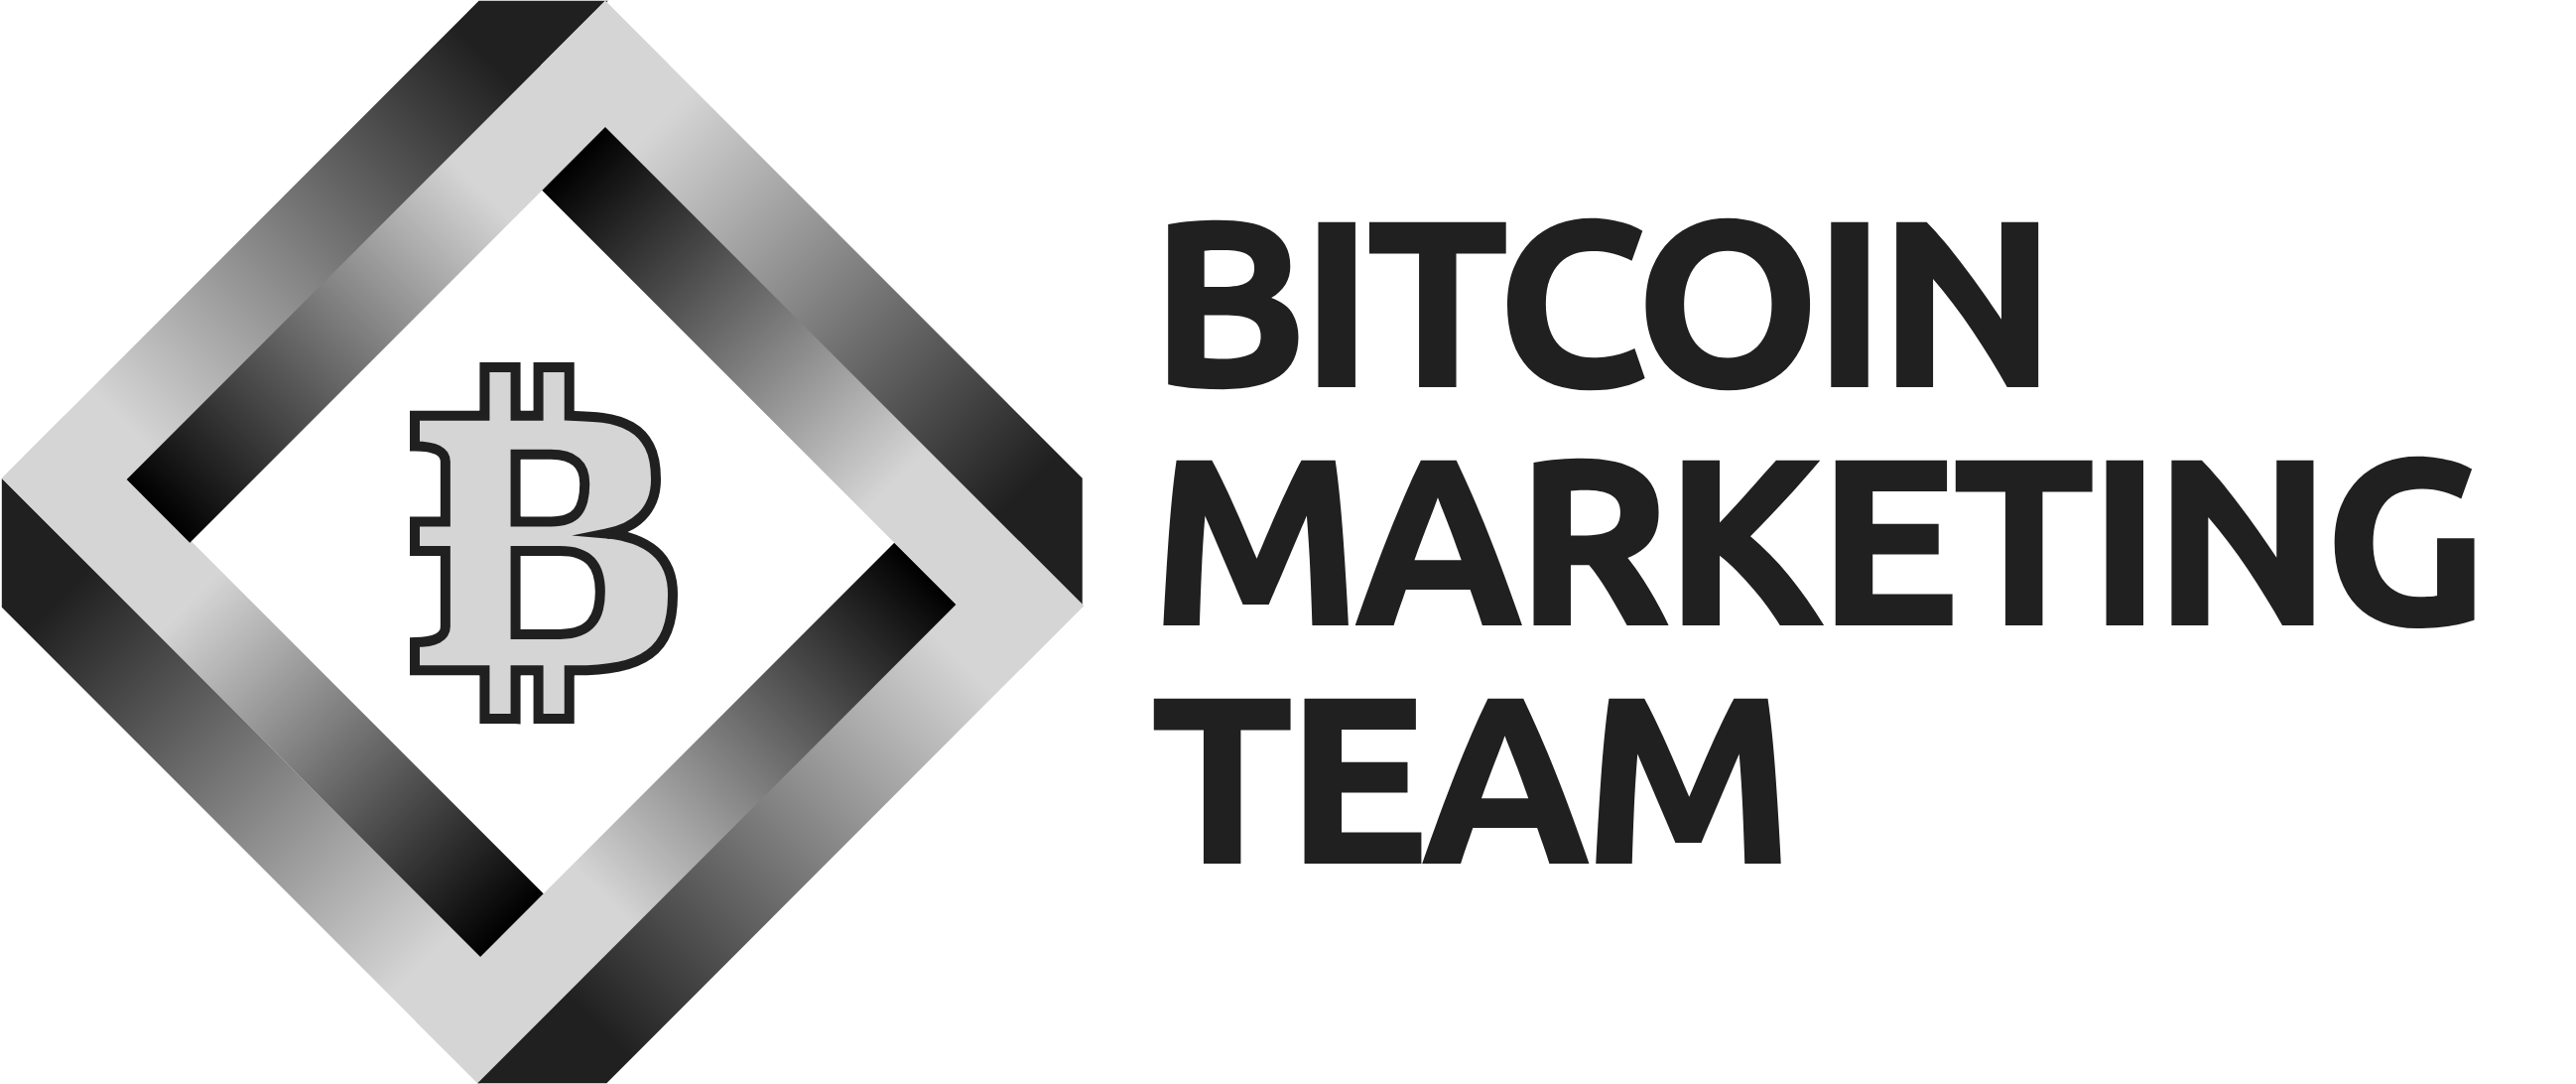 Bitcoin Marketing Team logo.png